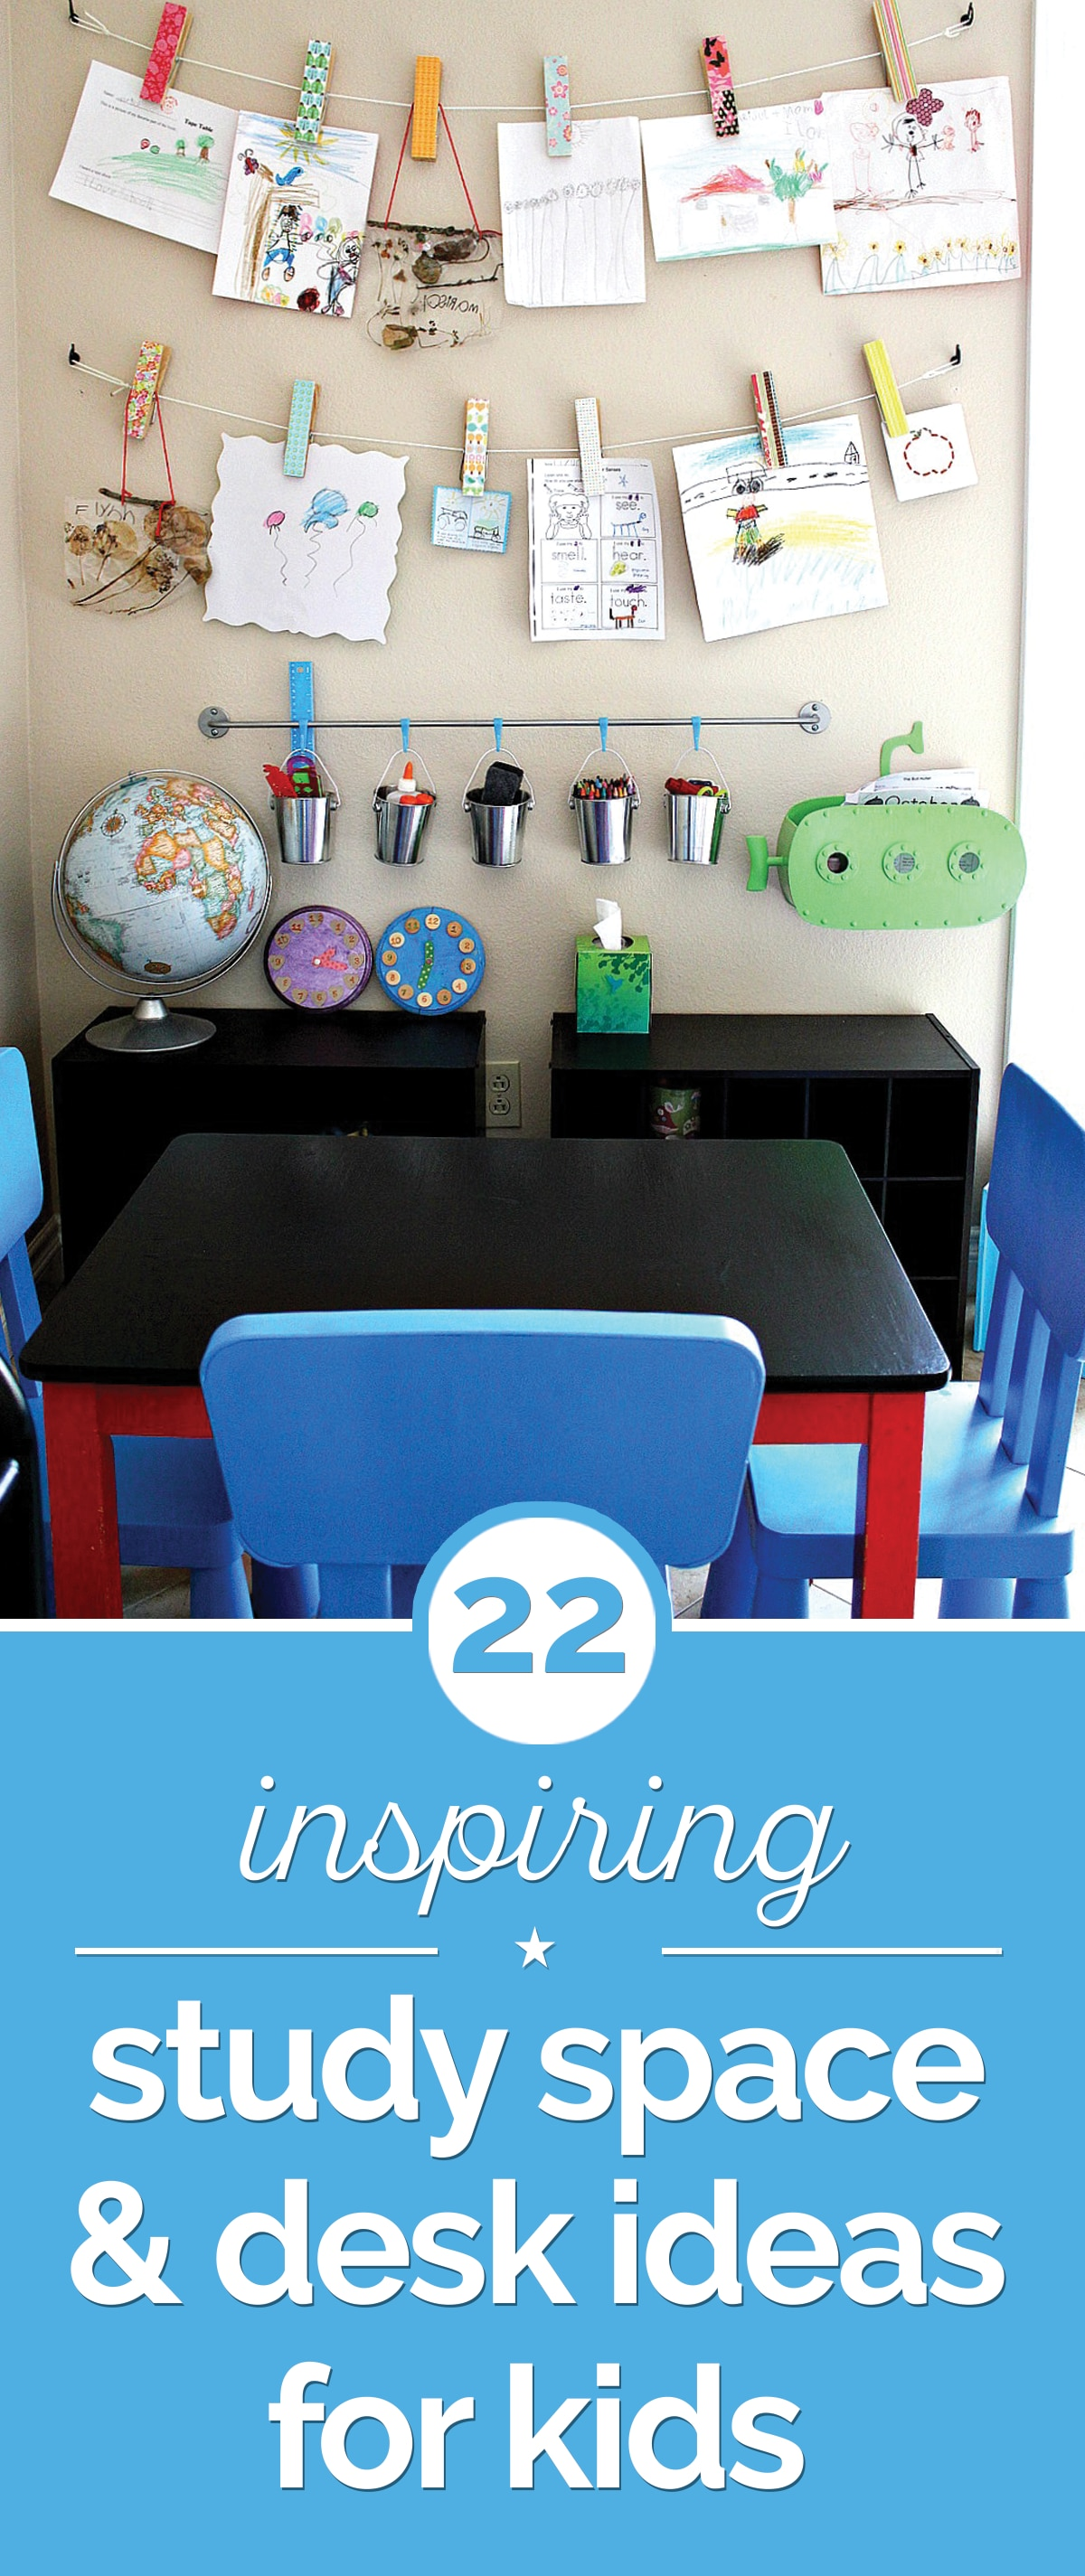 Desk Ideas For Kids 22 inspiring study space & desk ideas for kids - thegoodstuff